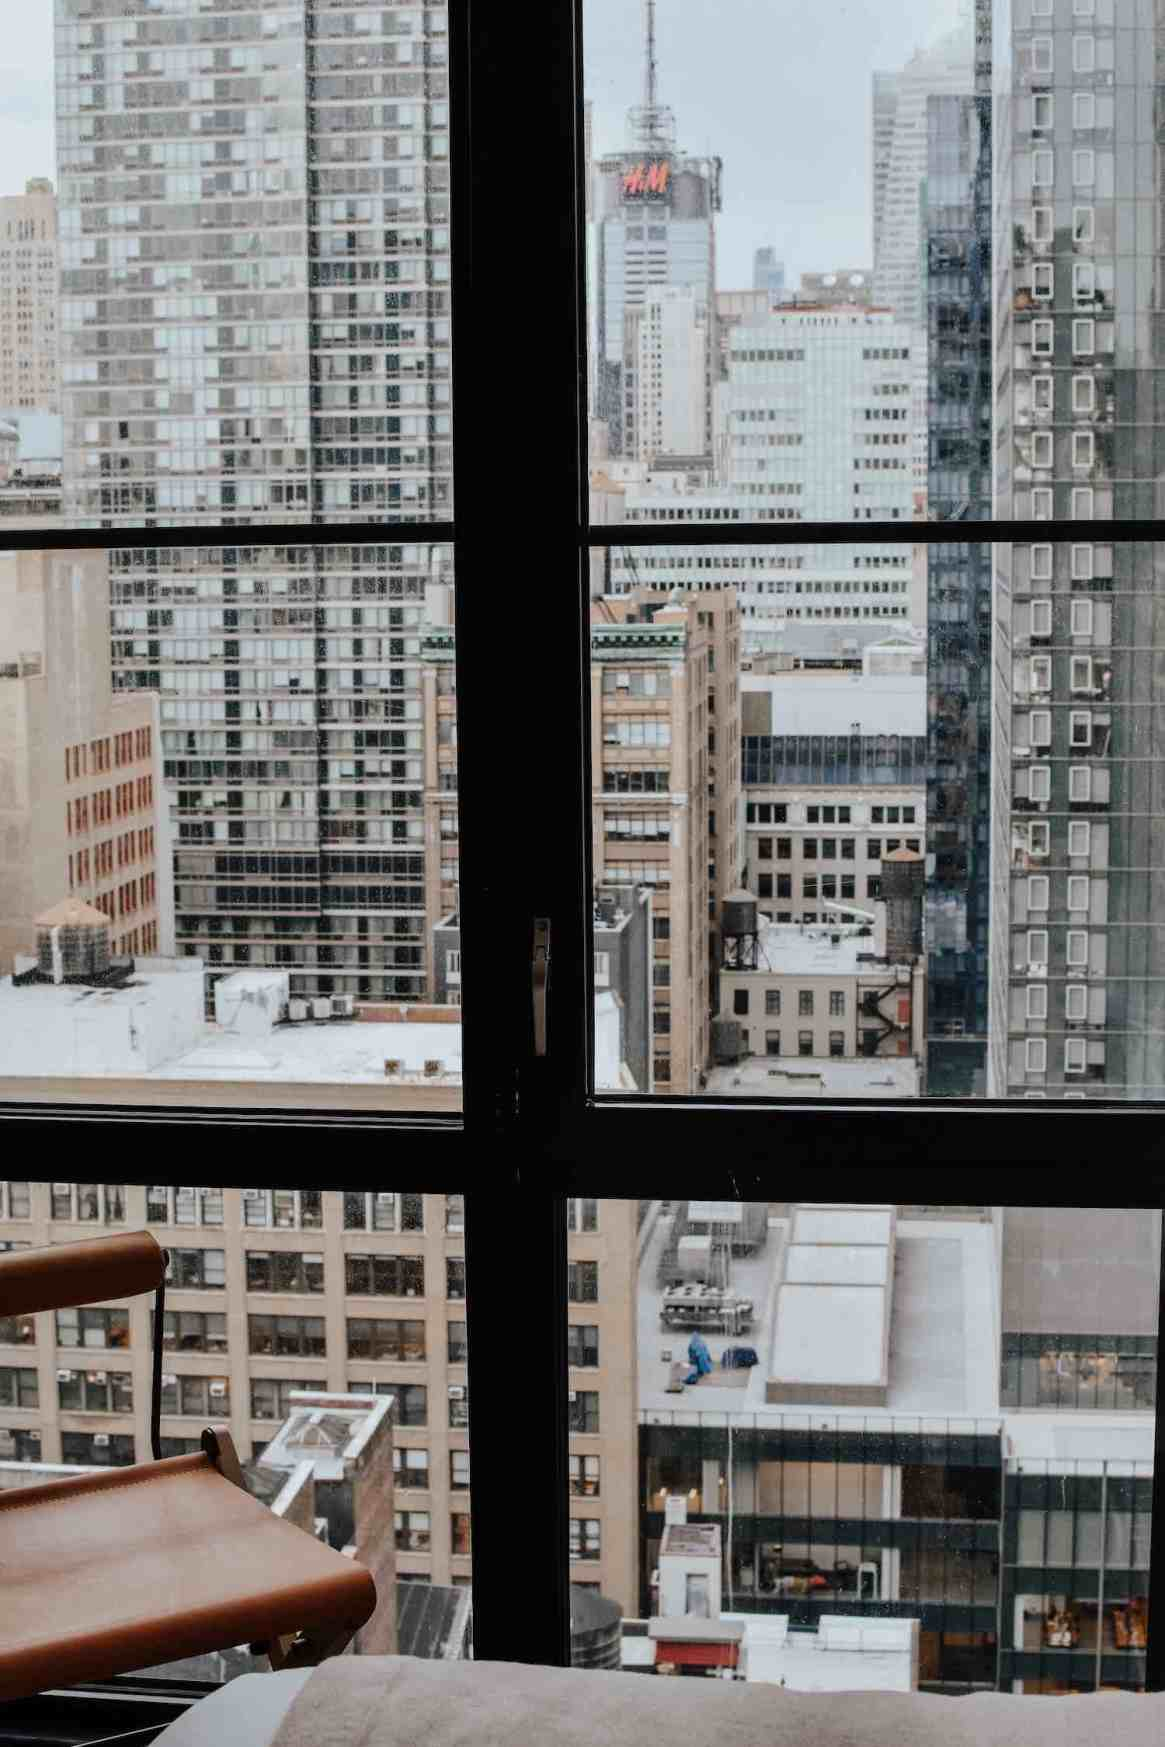 view from a window at the streets of new york - Hana's personal brands story